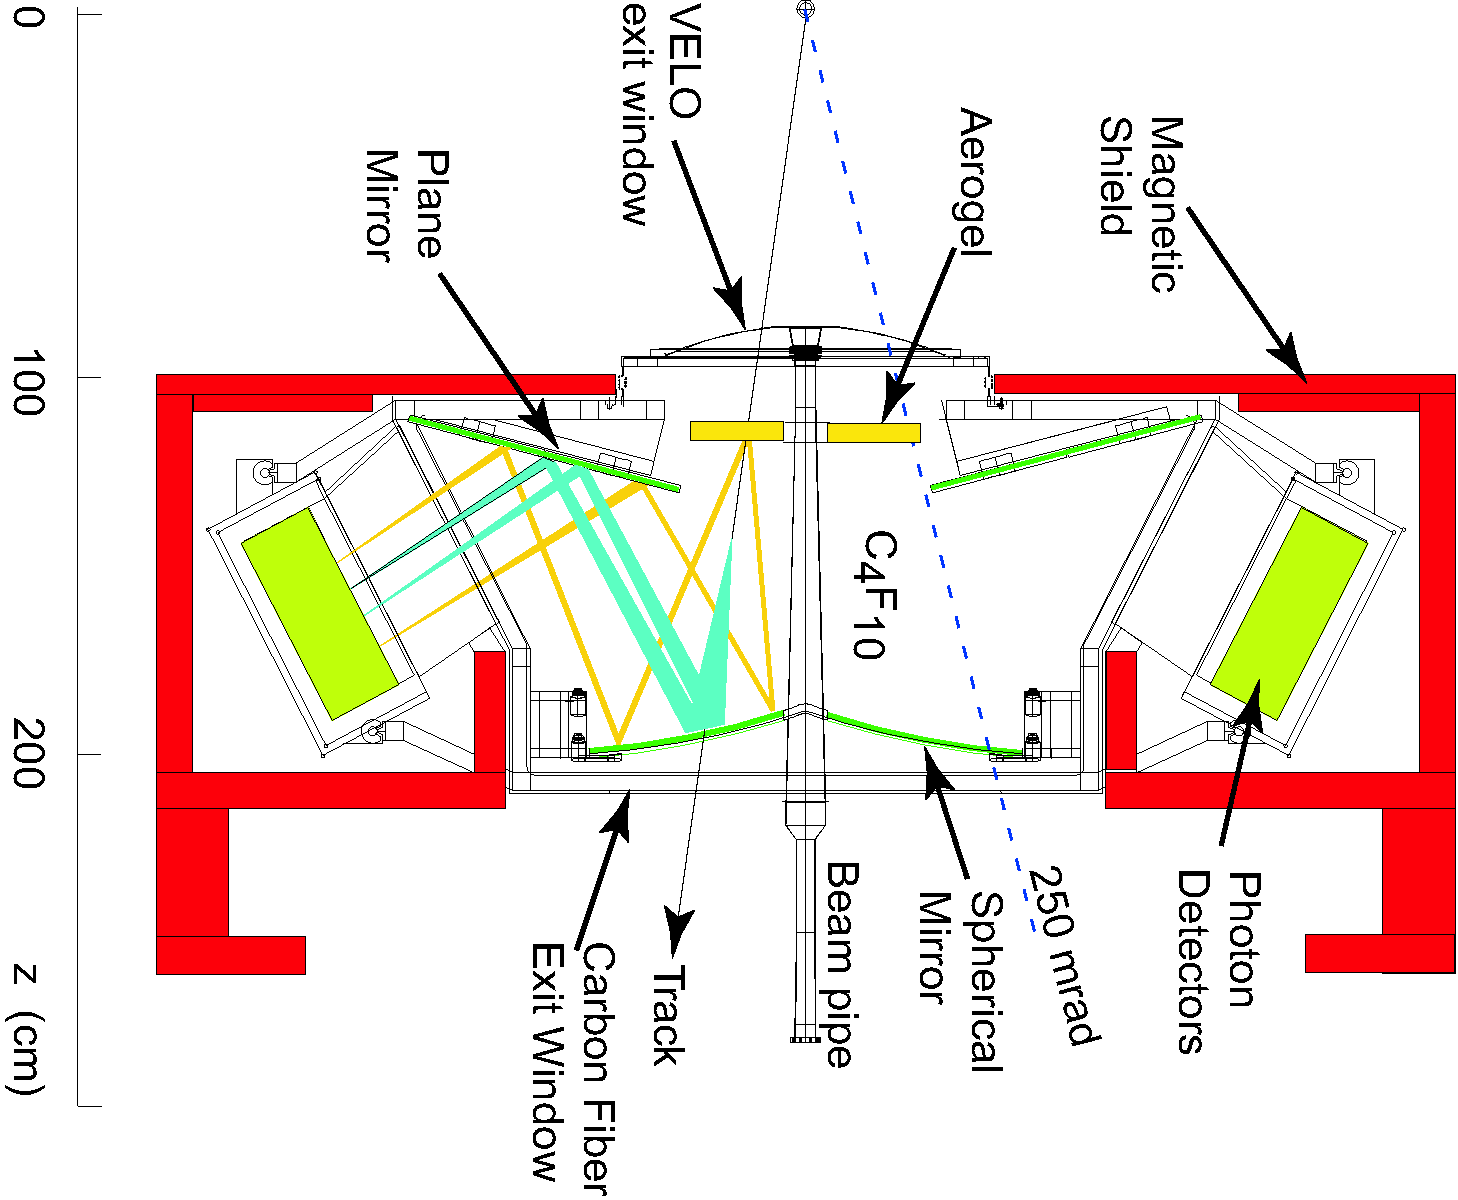 Richpicturesandfigures Lhcb Twiki Metal Detector Schematic Pdf Side View Layout Of The Rich1 Eps Version